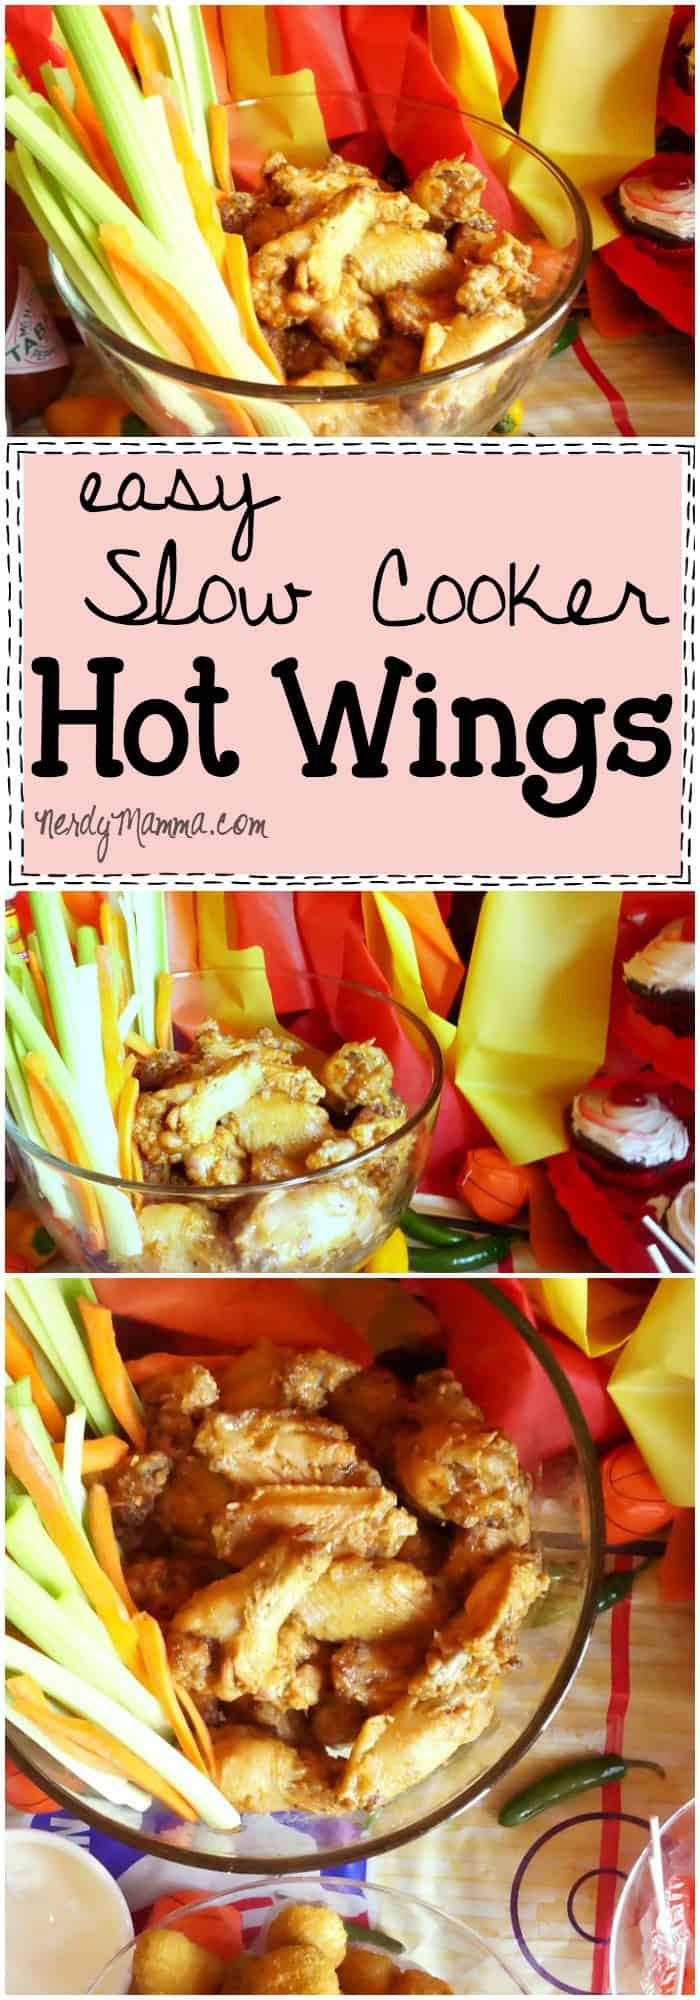 This recipe for making hot wings in the slow cooker is so EASY! I didn't know it could be this hands-off...I have to do this.